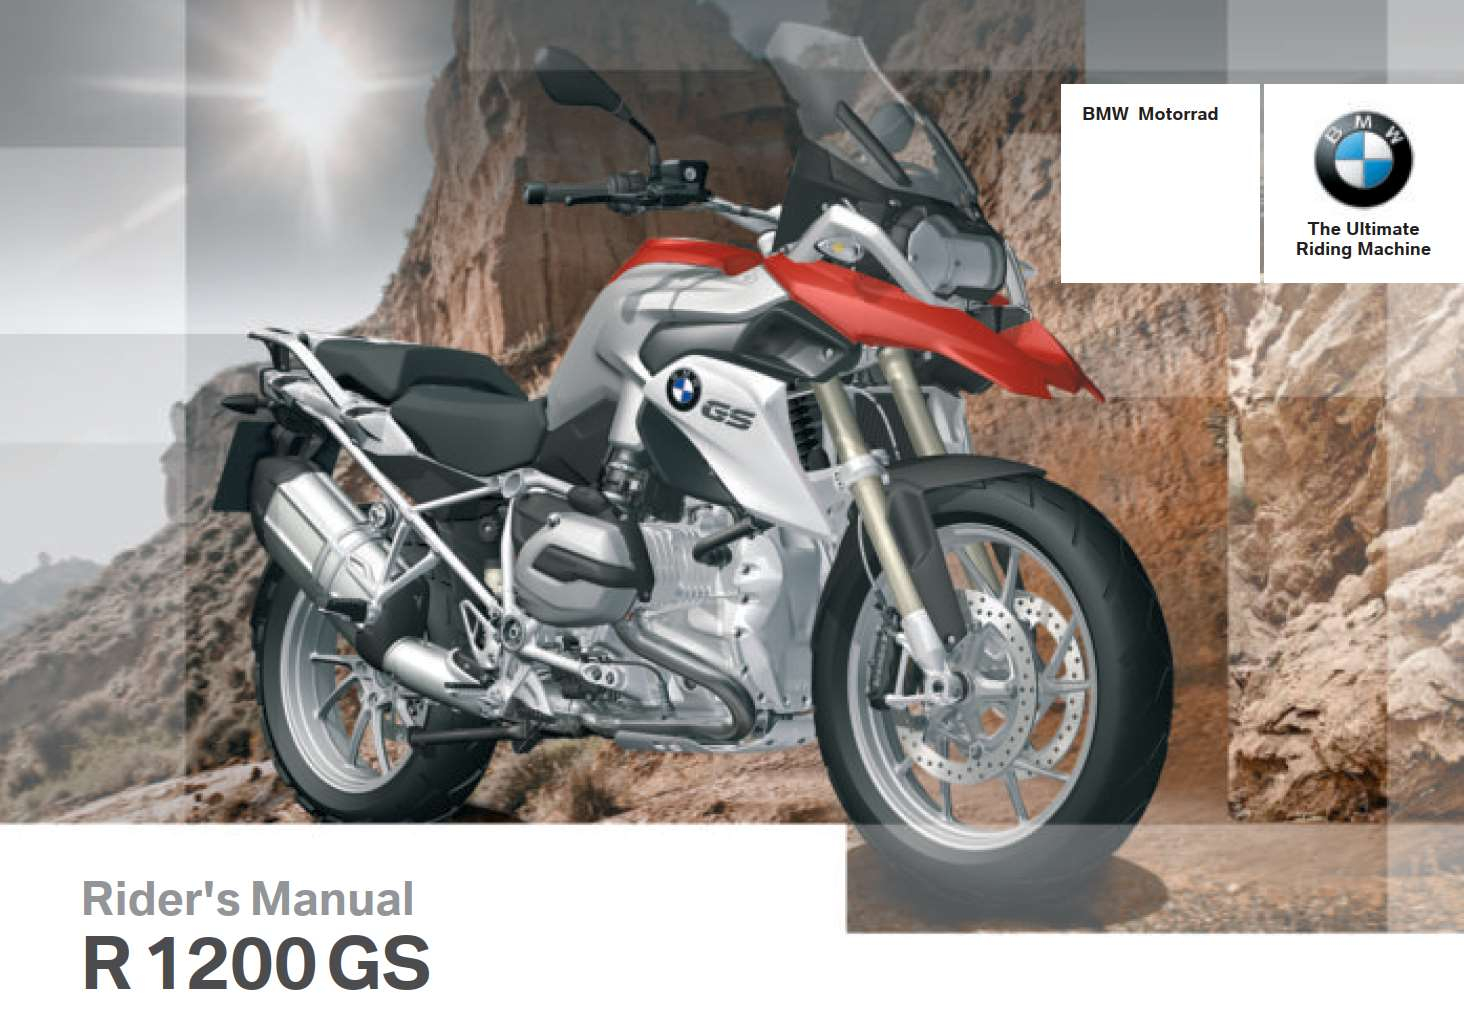 BMW R 1200 GS 2013 Owner's Manual – PDF Download